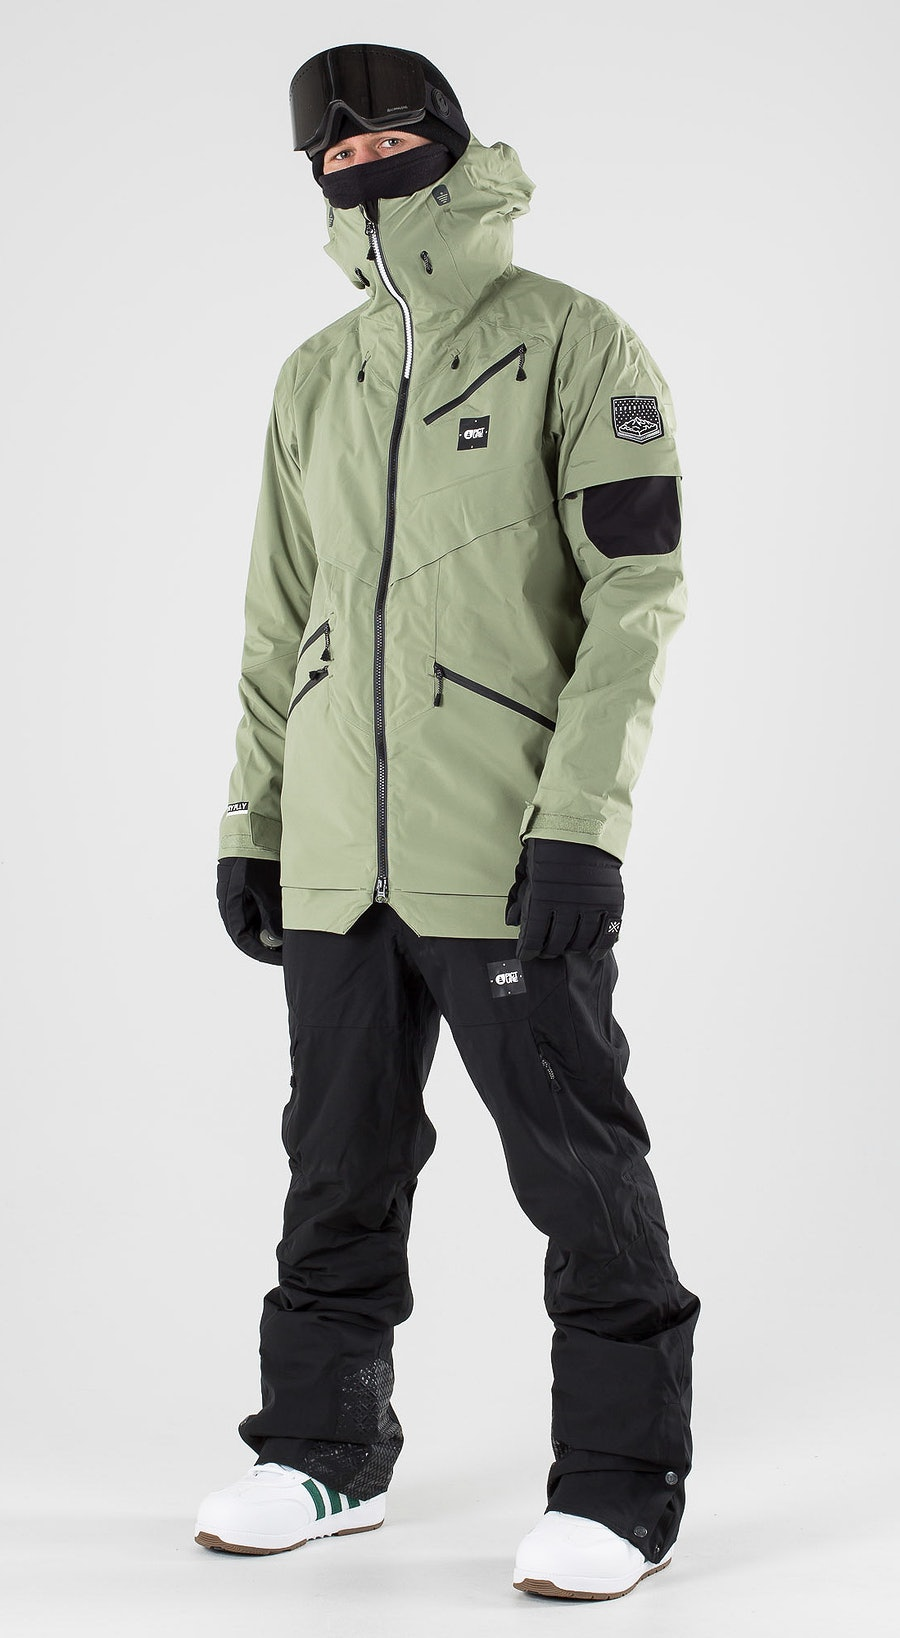 Picture Zephir Army Green Snowboard clothing Multi